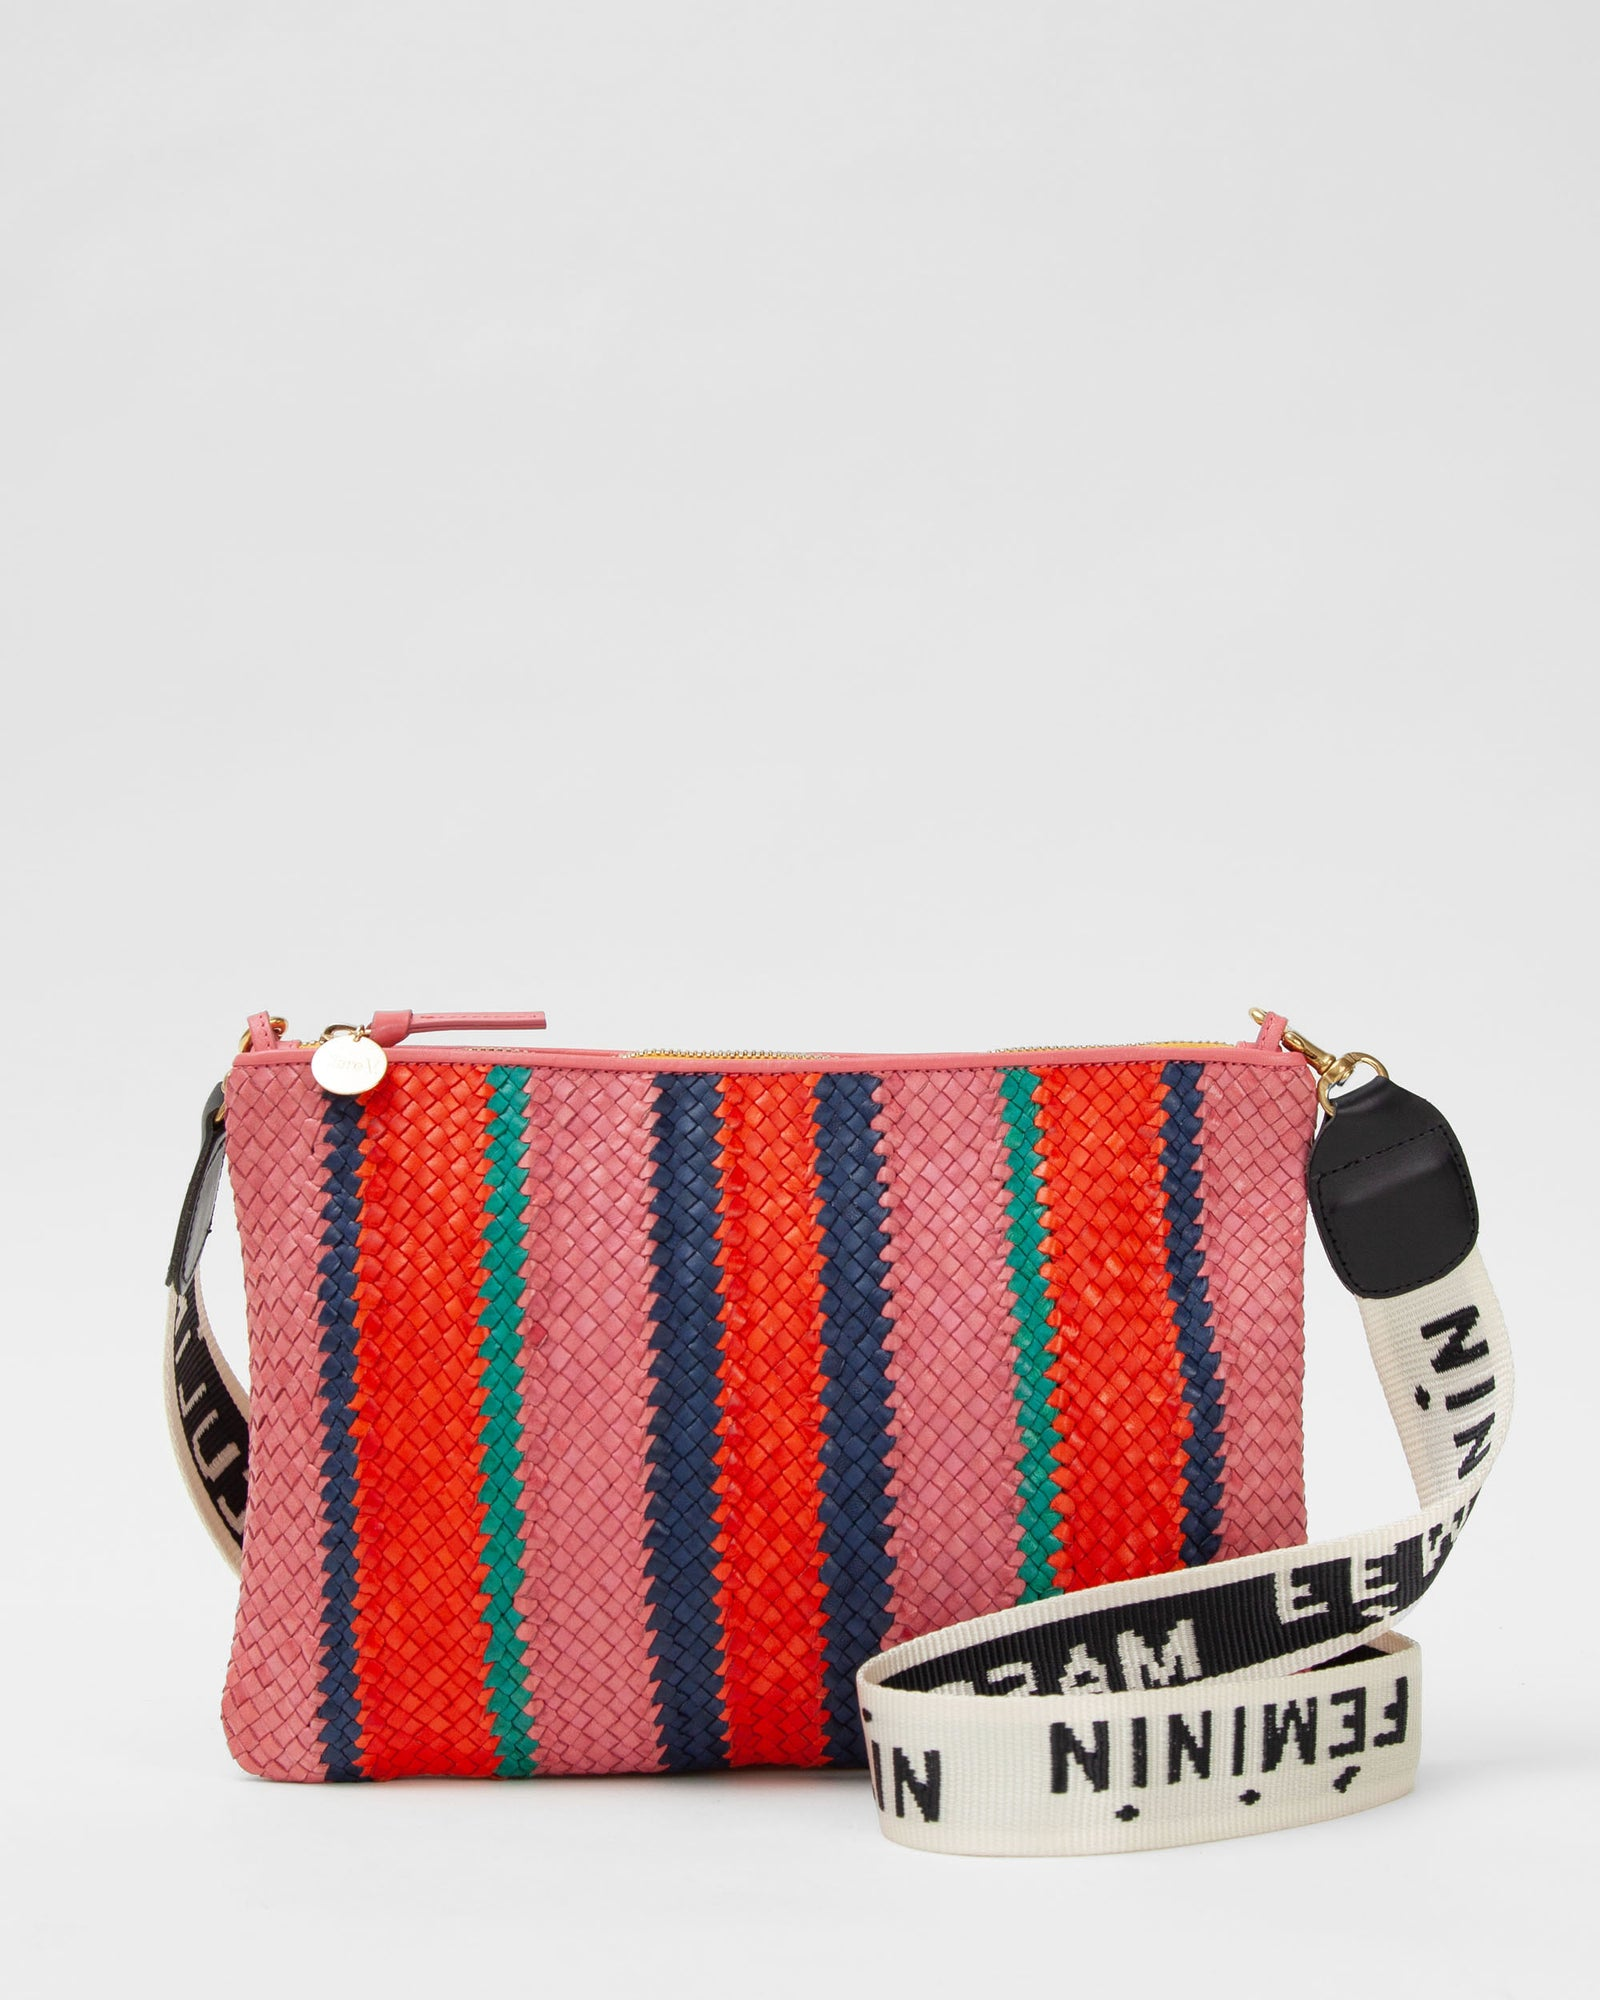 Petal with Poppy, Navy & Mint Opal Woven Stripes Flat Clutch w/ Tabs - with Masculin Feminine Crossbody Strap